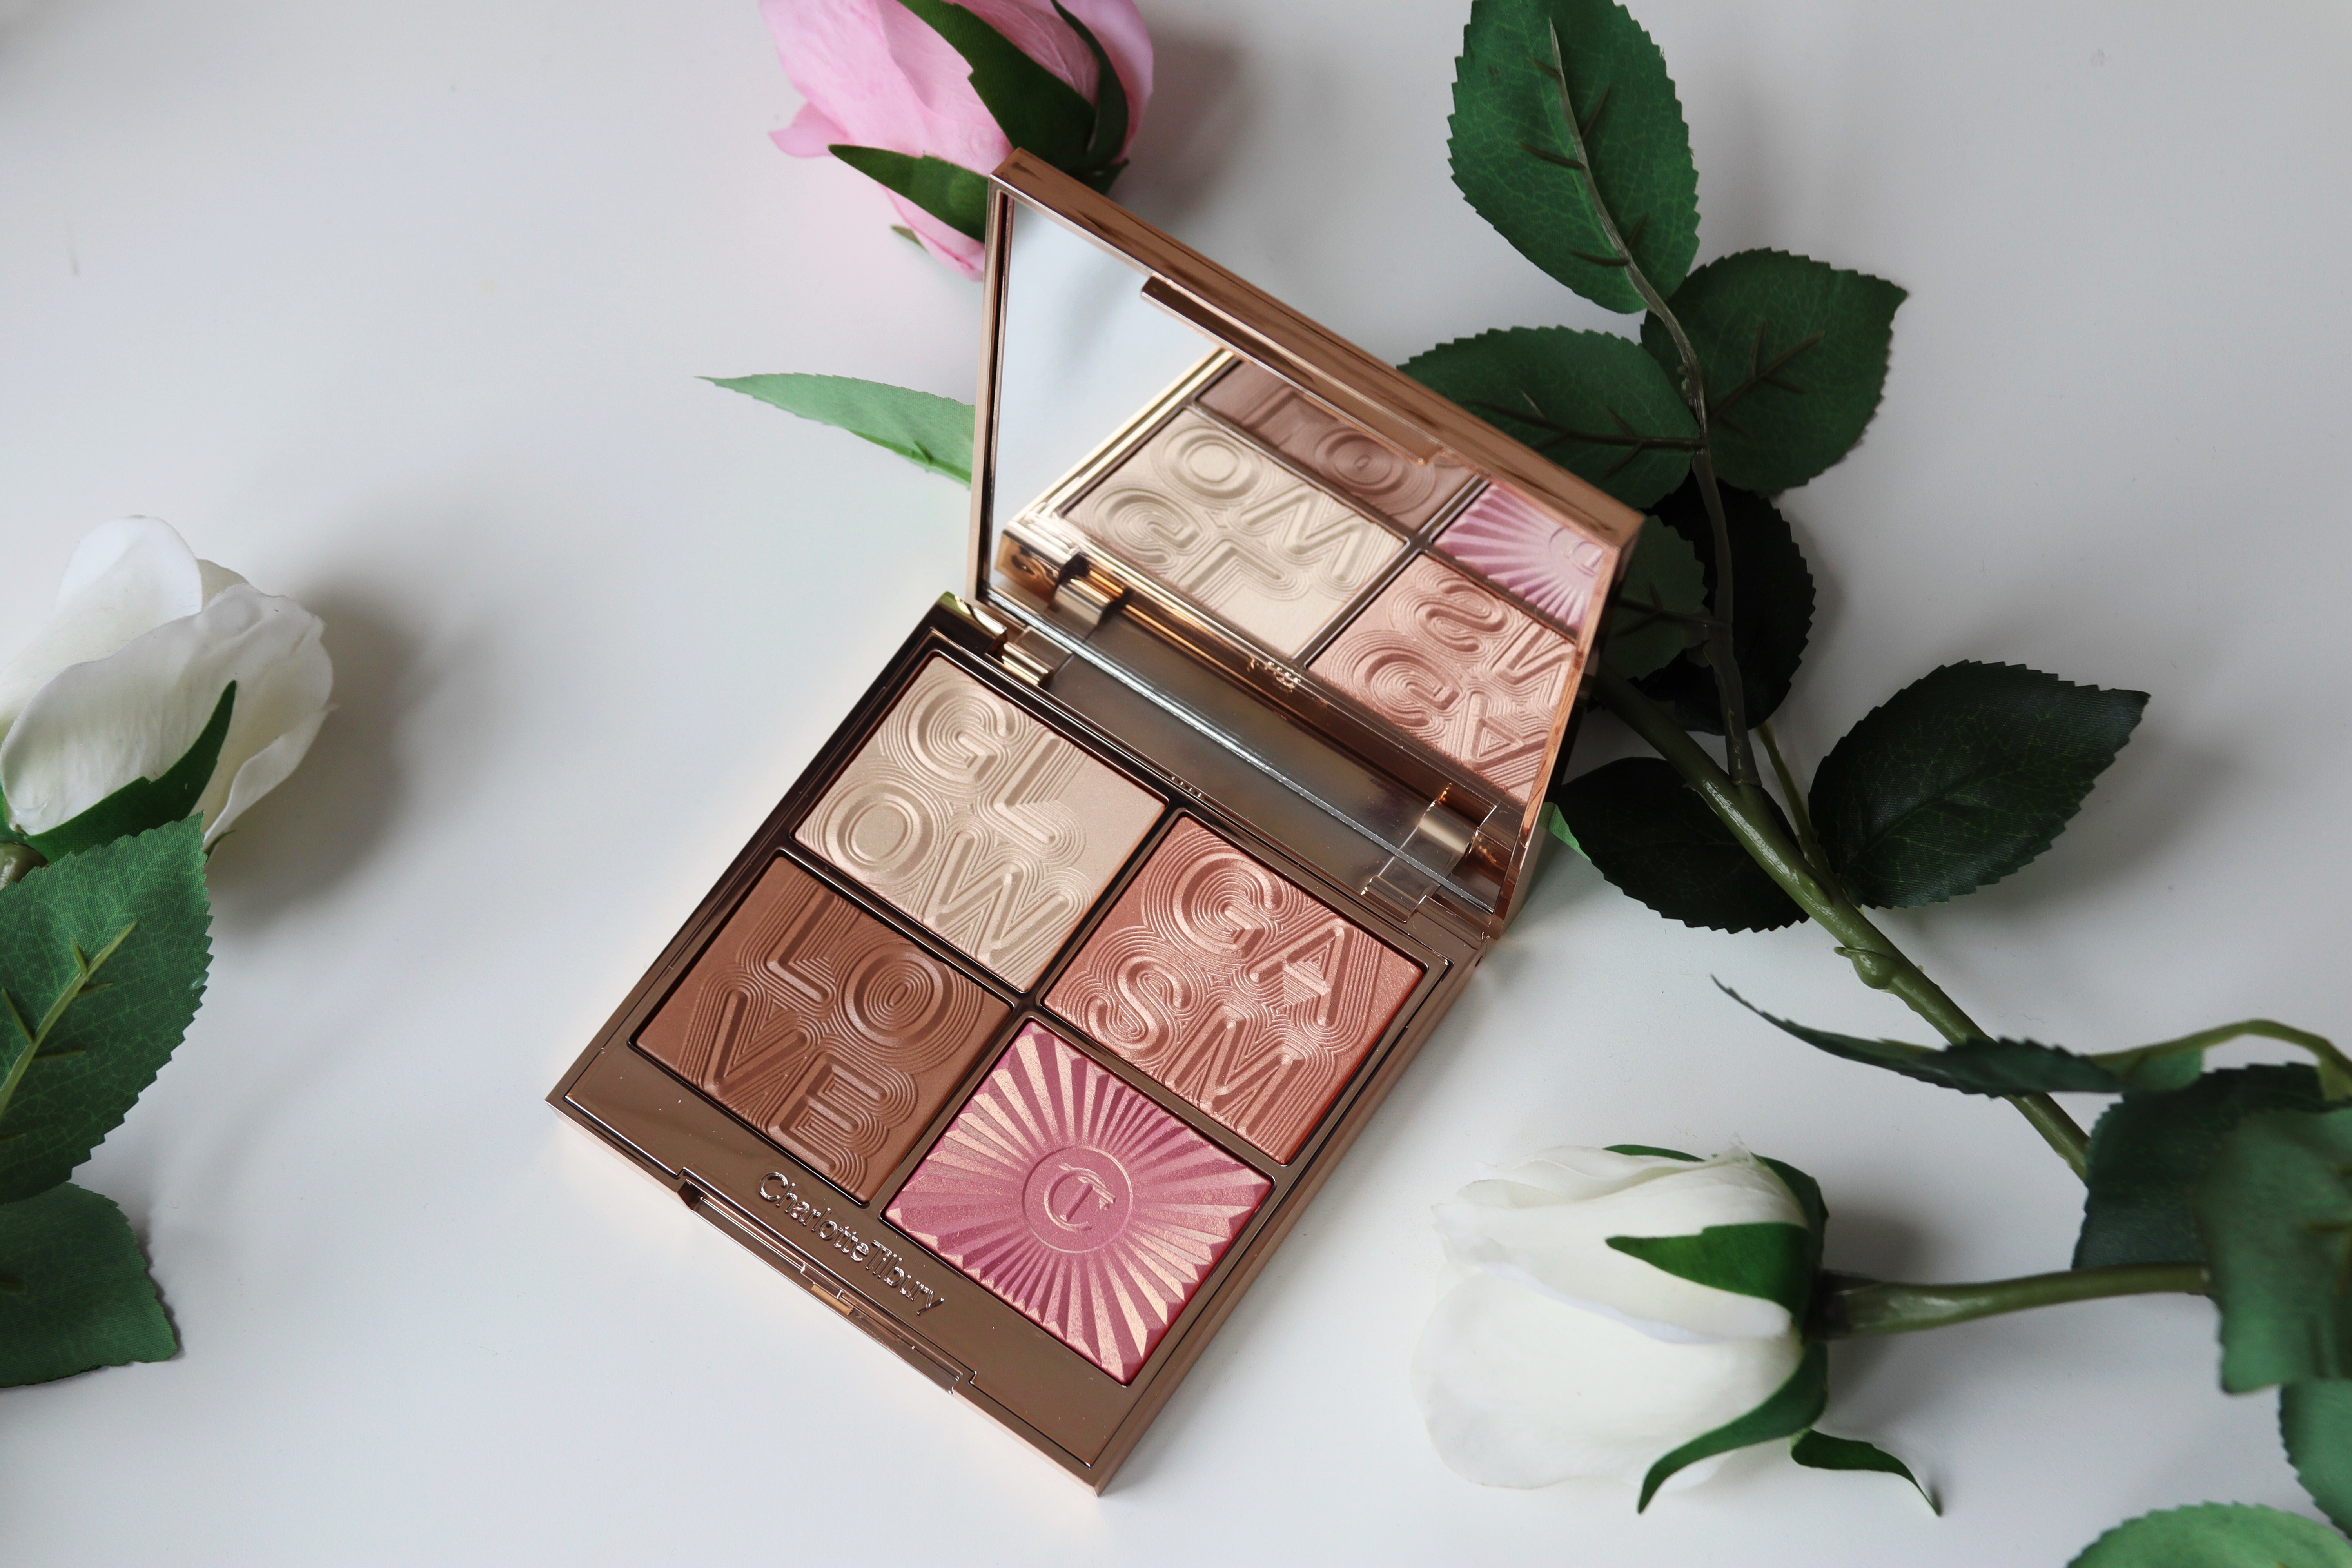 Charlotte Tilbury 'Glowgasm' palette sitting on a white background. The palette is open showing the four shades, a rose blush, two champagne highlighter shades, a neutral bronzer. They is a fake white rose to the right side of the palette just out of view.